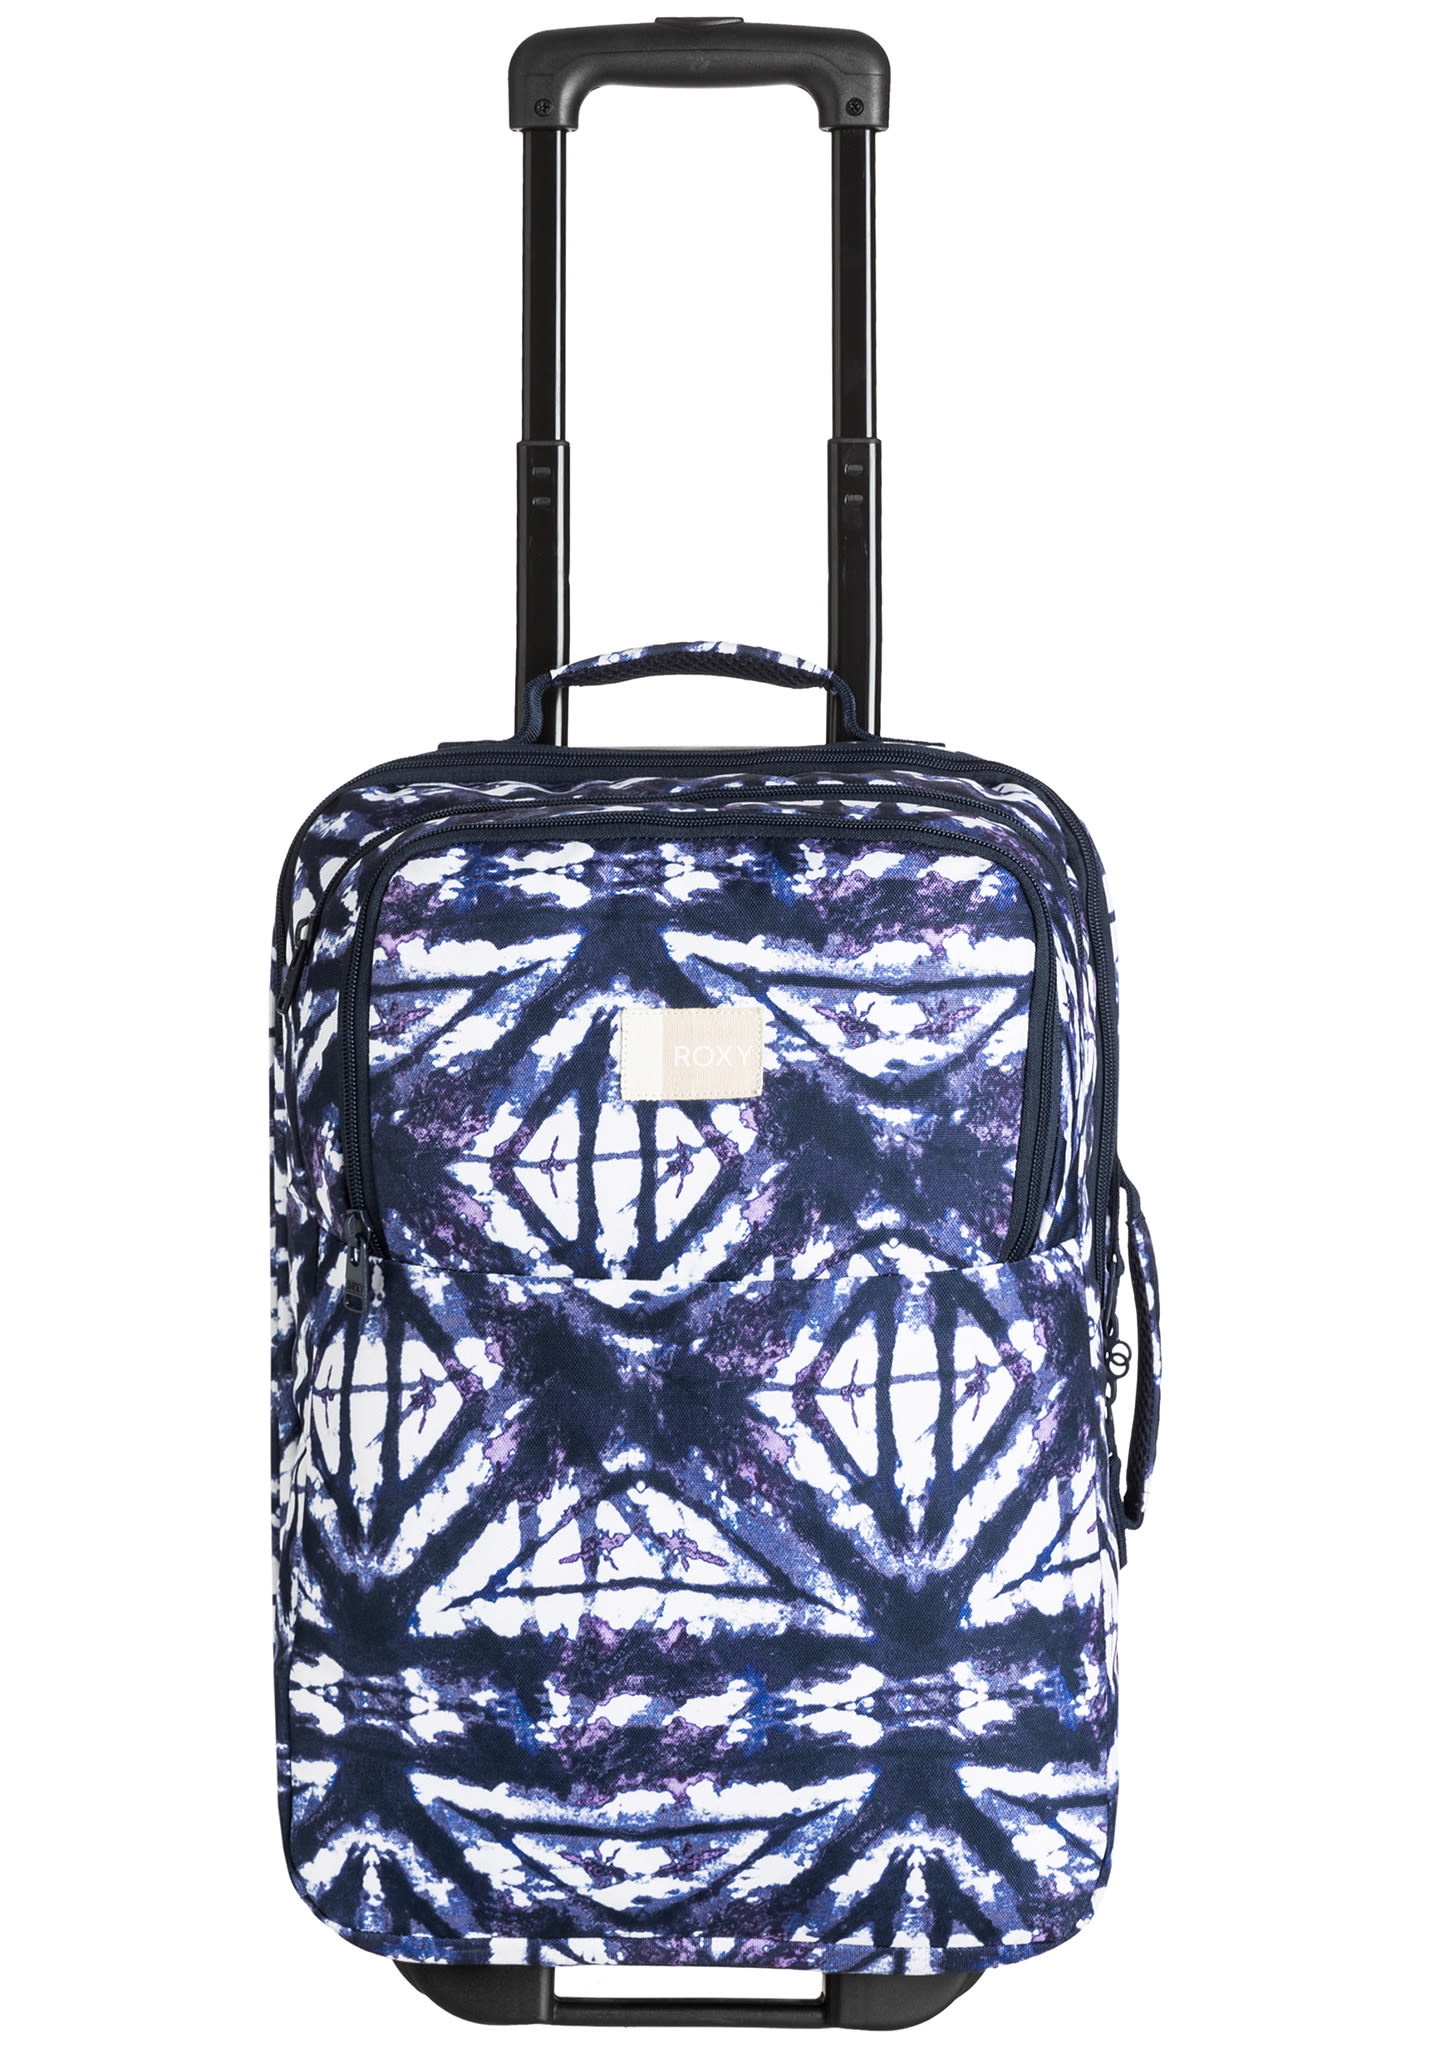 Roxy Wheelie - Travel Bag for Women - Blue - Planet Sports e64c50a2a75d4